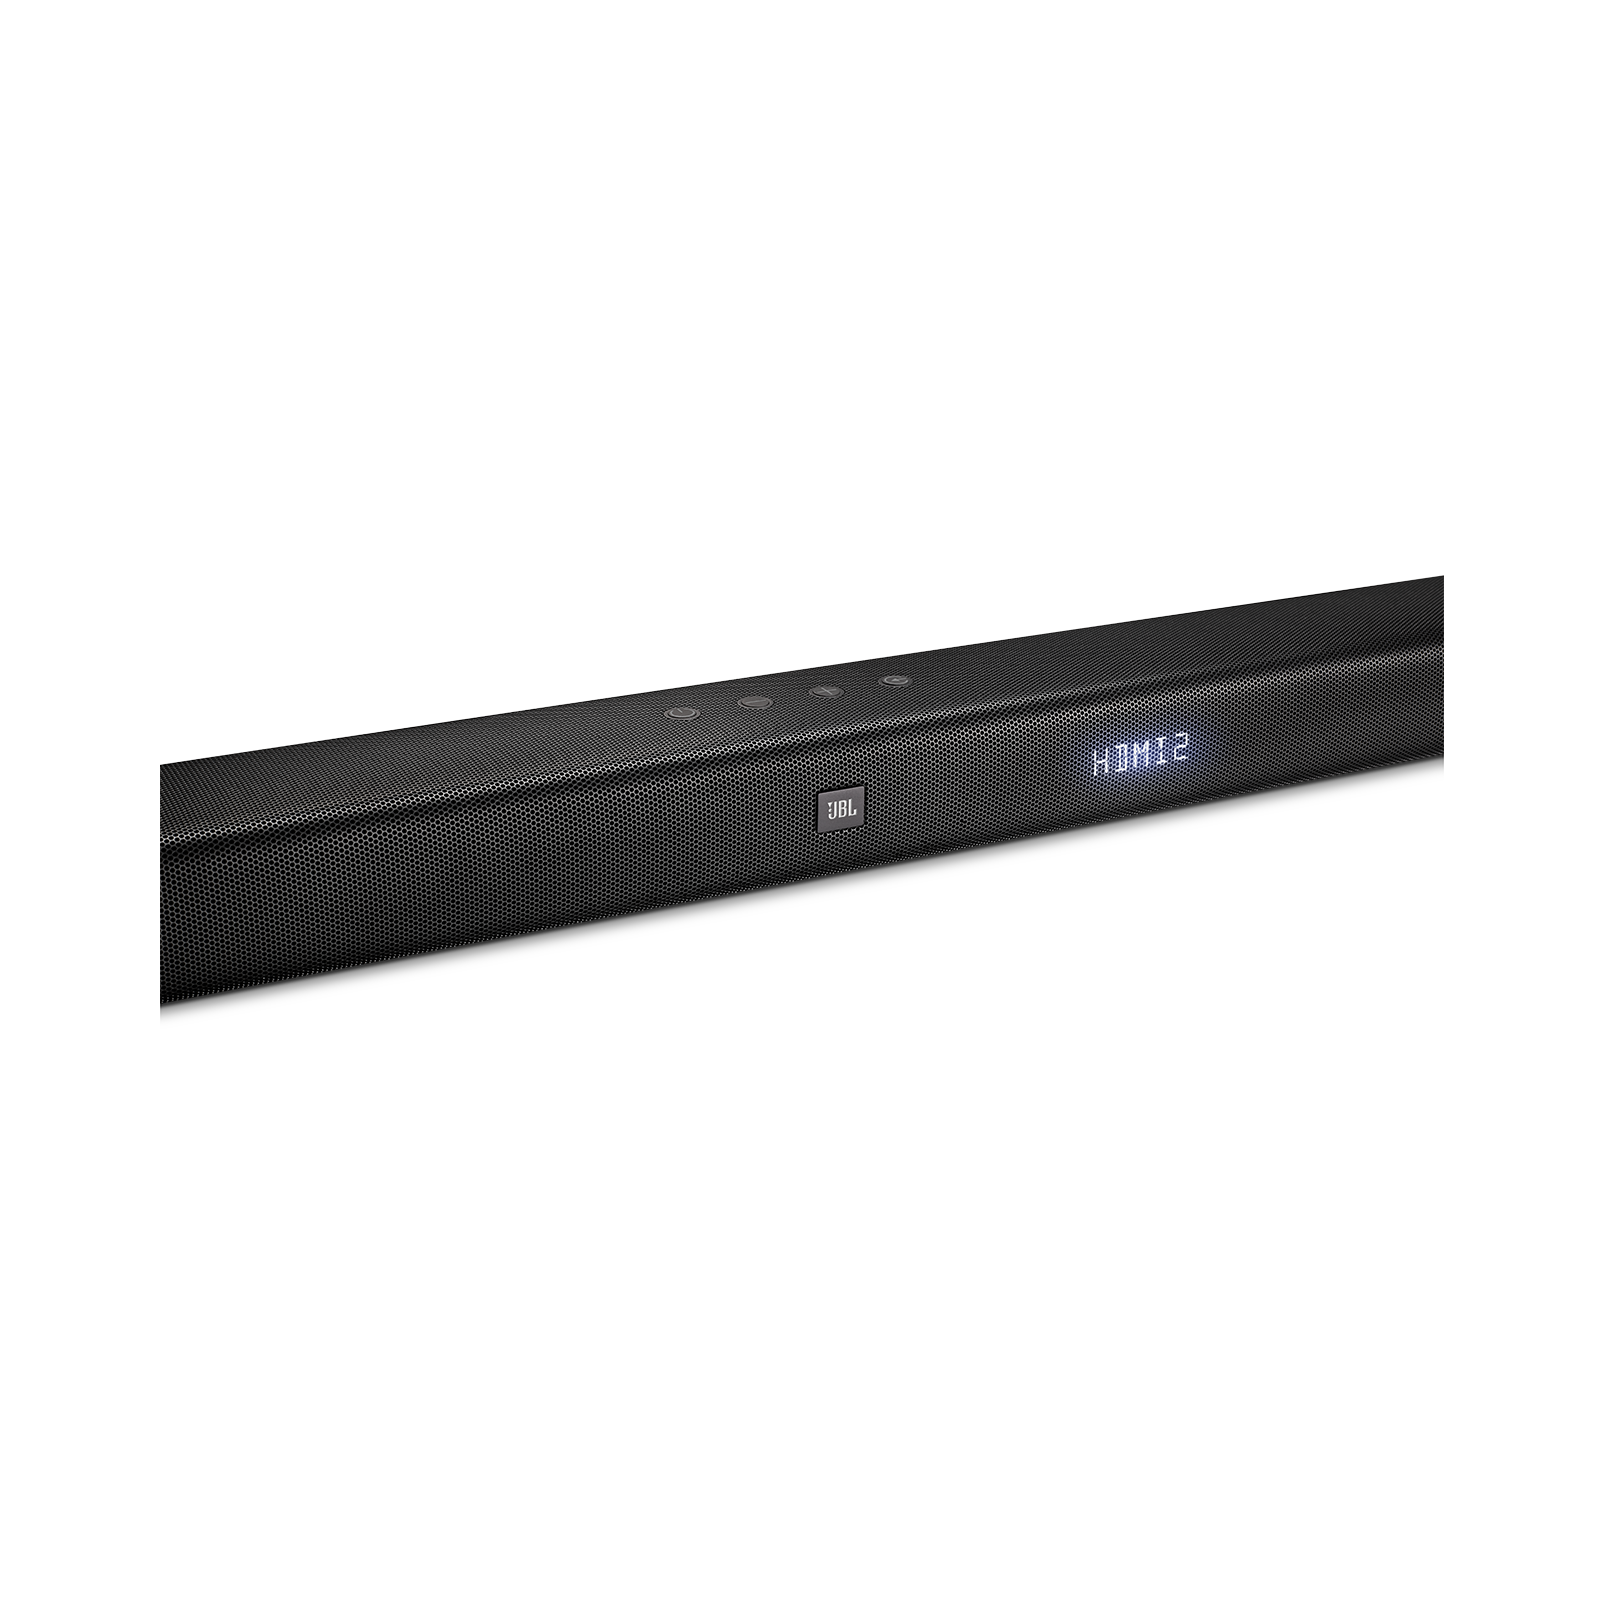 Jbl Bar 31 Channel 4k Ultra Hd Soundbar With Wireless Subwoofer Moreover Wiring Harness Diagram On Samsung Sound